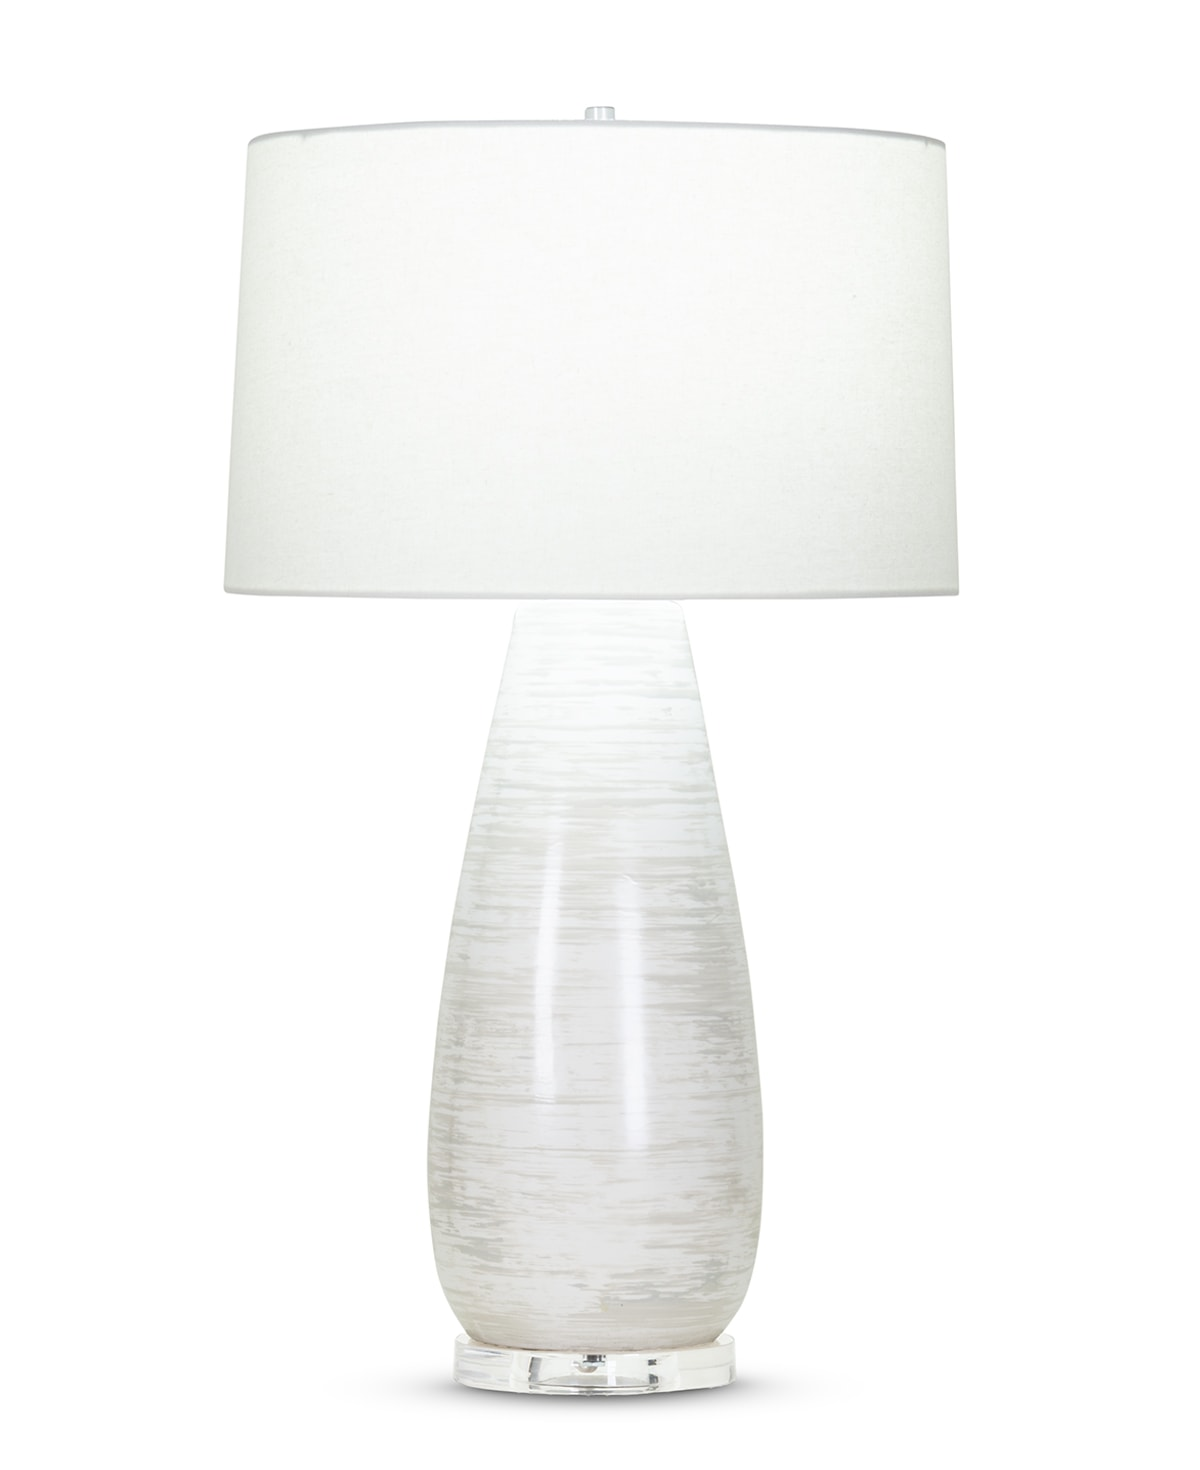 FlowDecor Simone Table Lamp in ceramic with off-white finish and light grey brush strokes and off-white cotton tapered drum shade (# 4075)